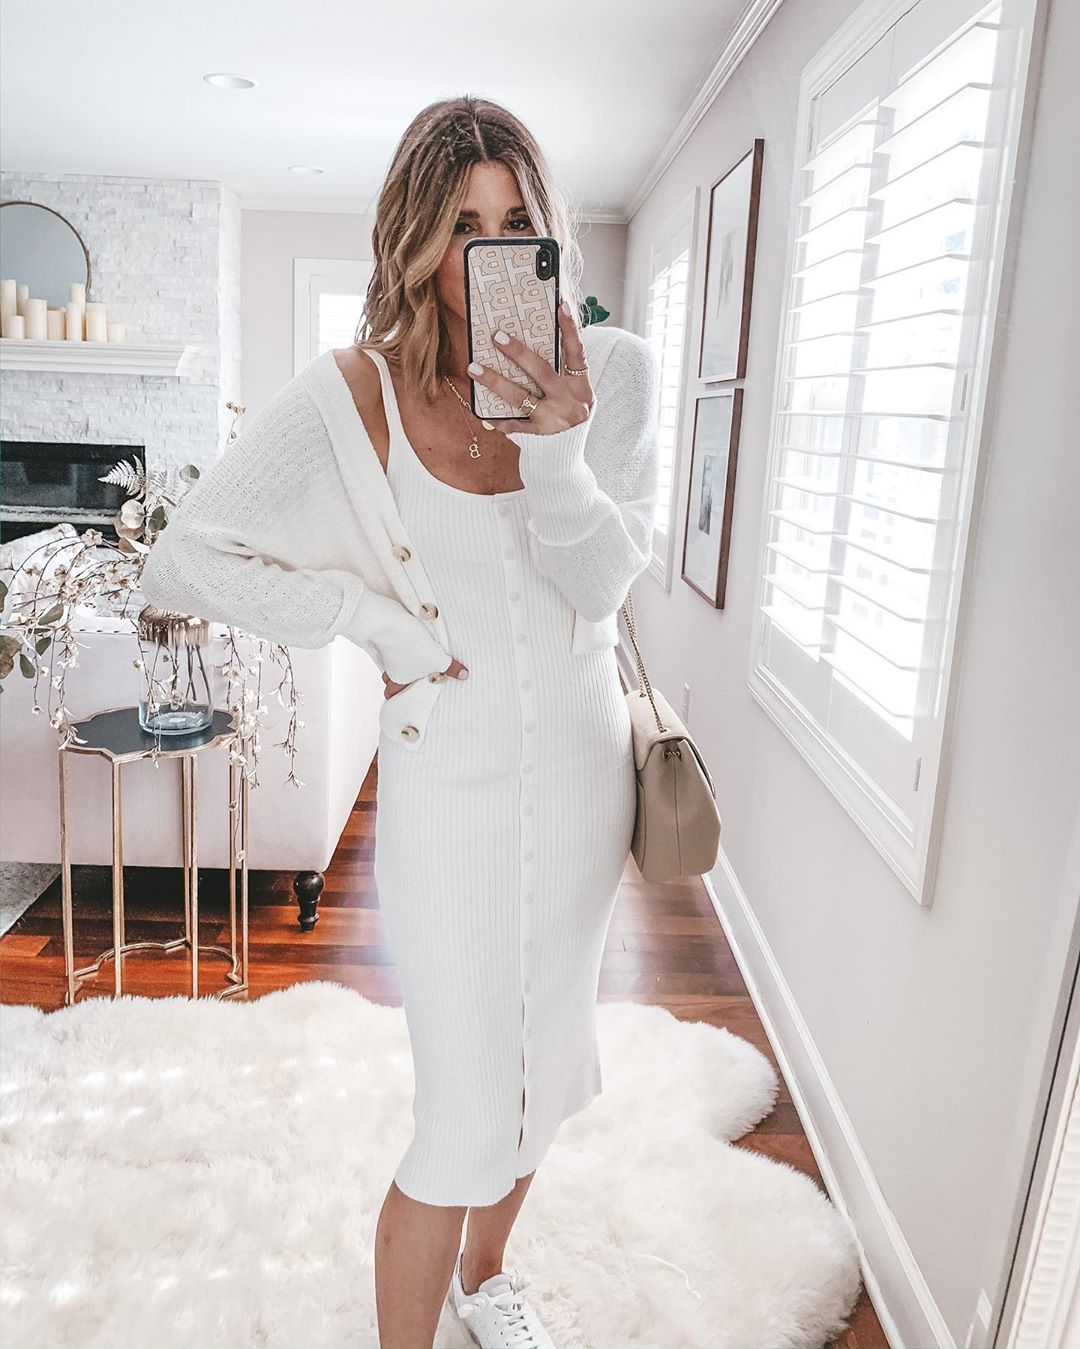 The Best All White Outfit Ideas • Petite in Paris